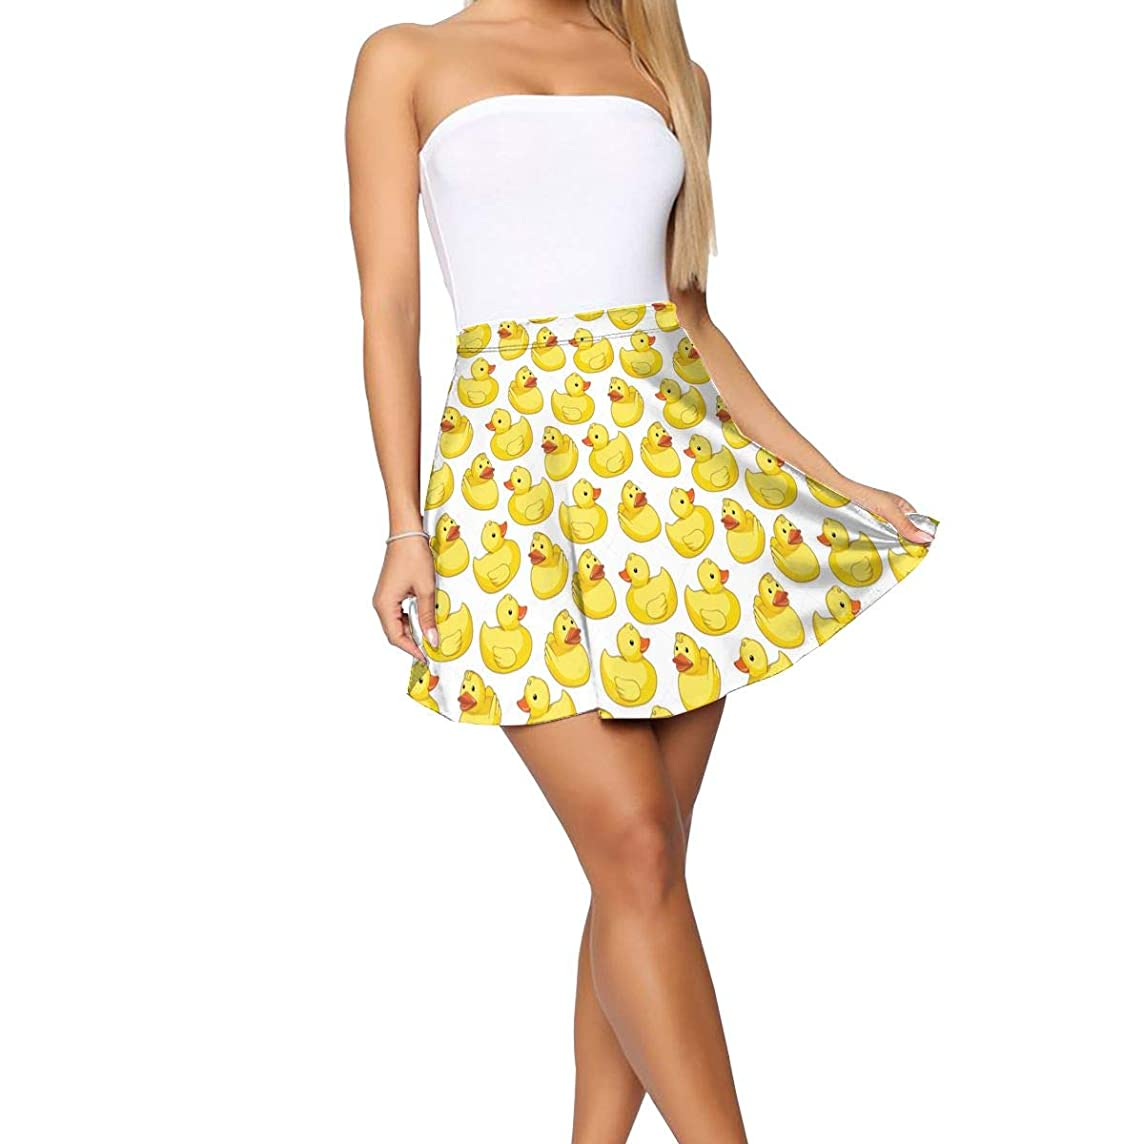 Nkjsiss White Geese Yellow Short Skirt Women's Basic Cute Casual Pleated Skirts S-XL